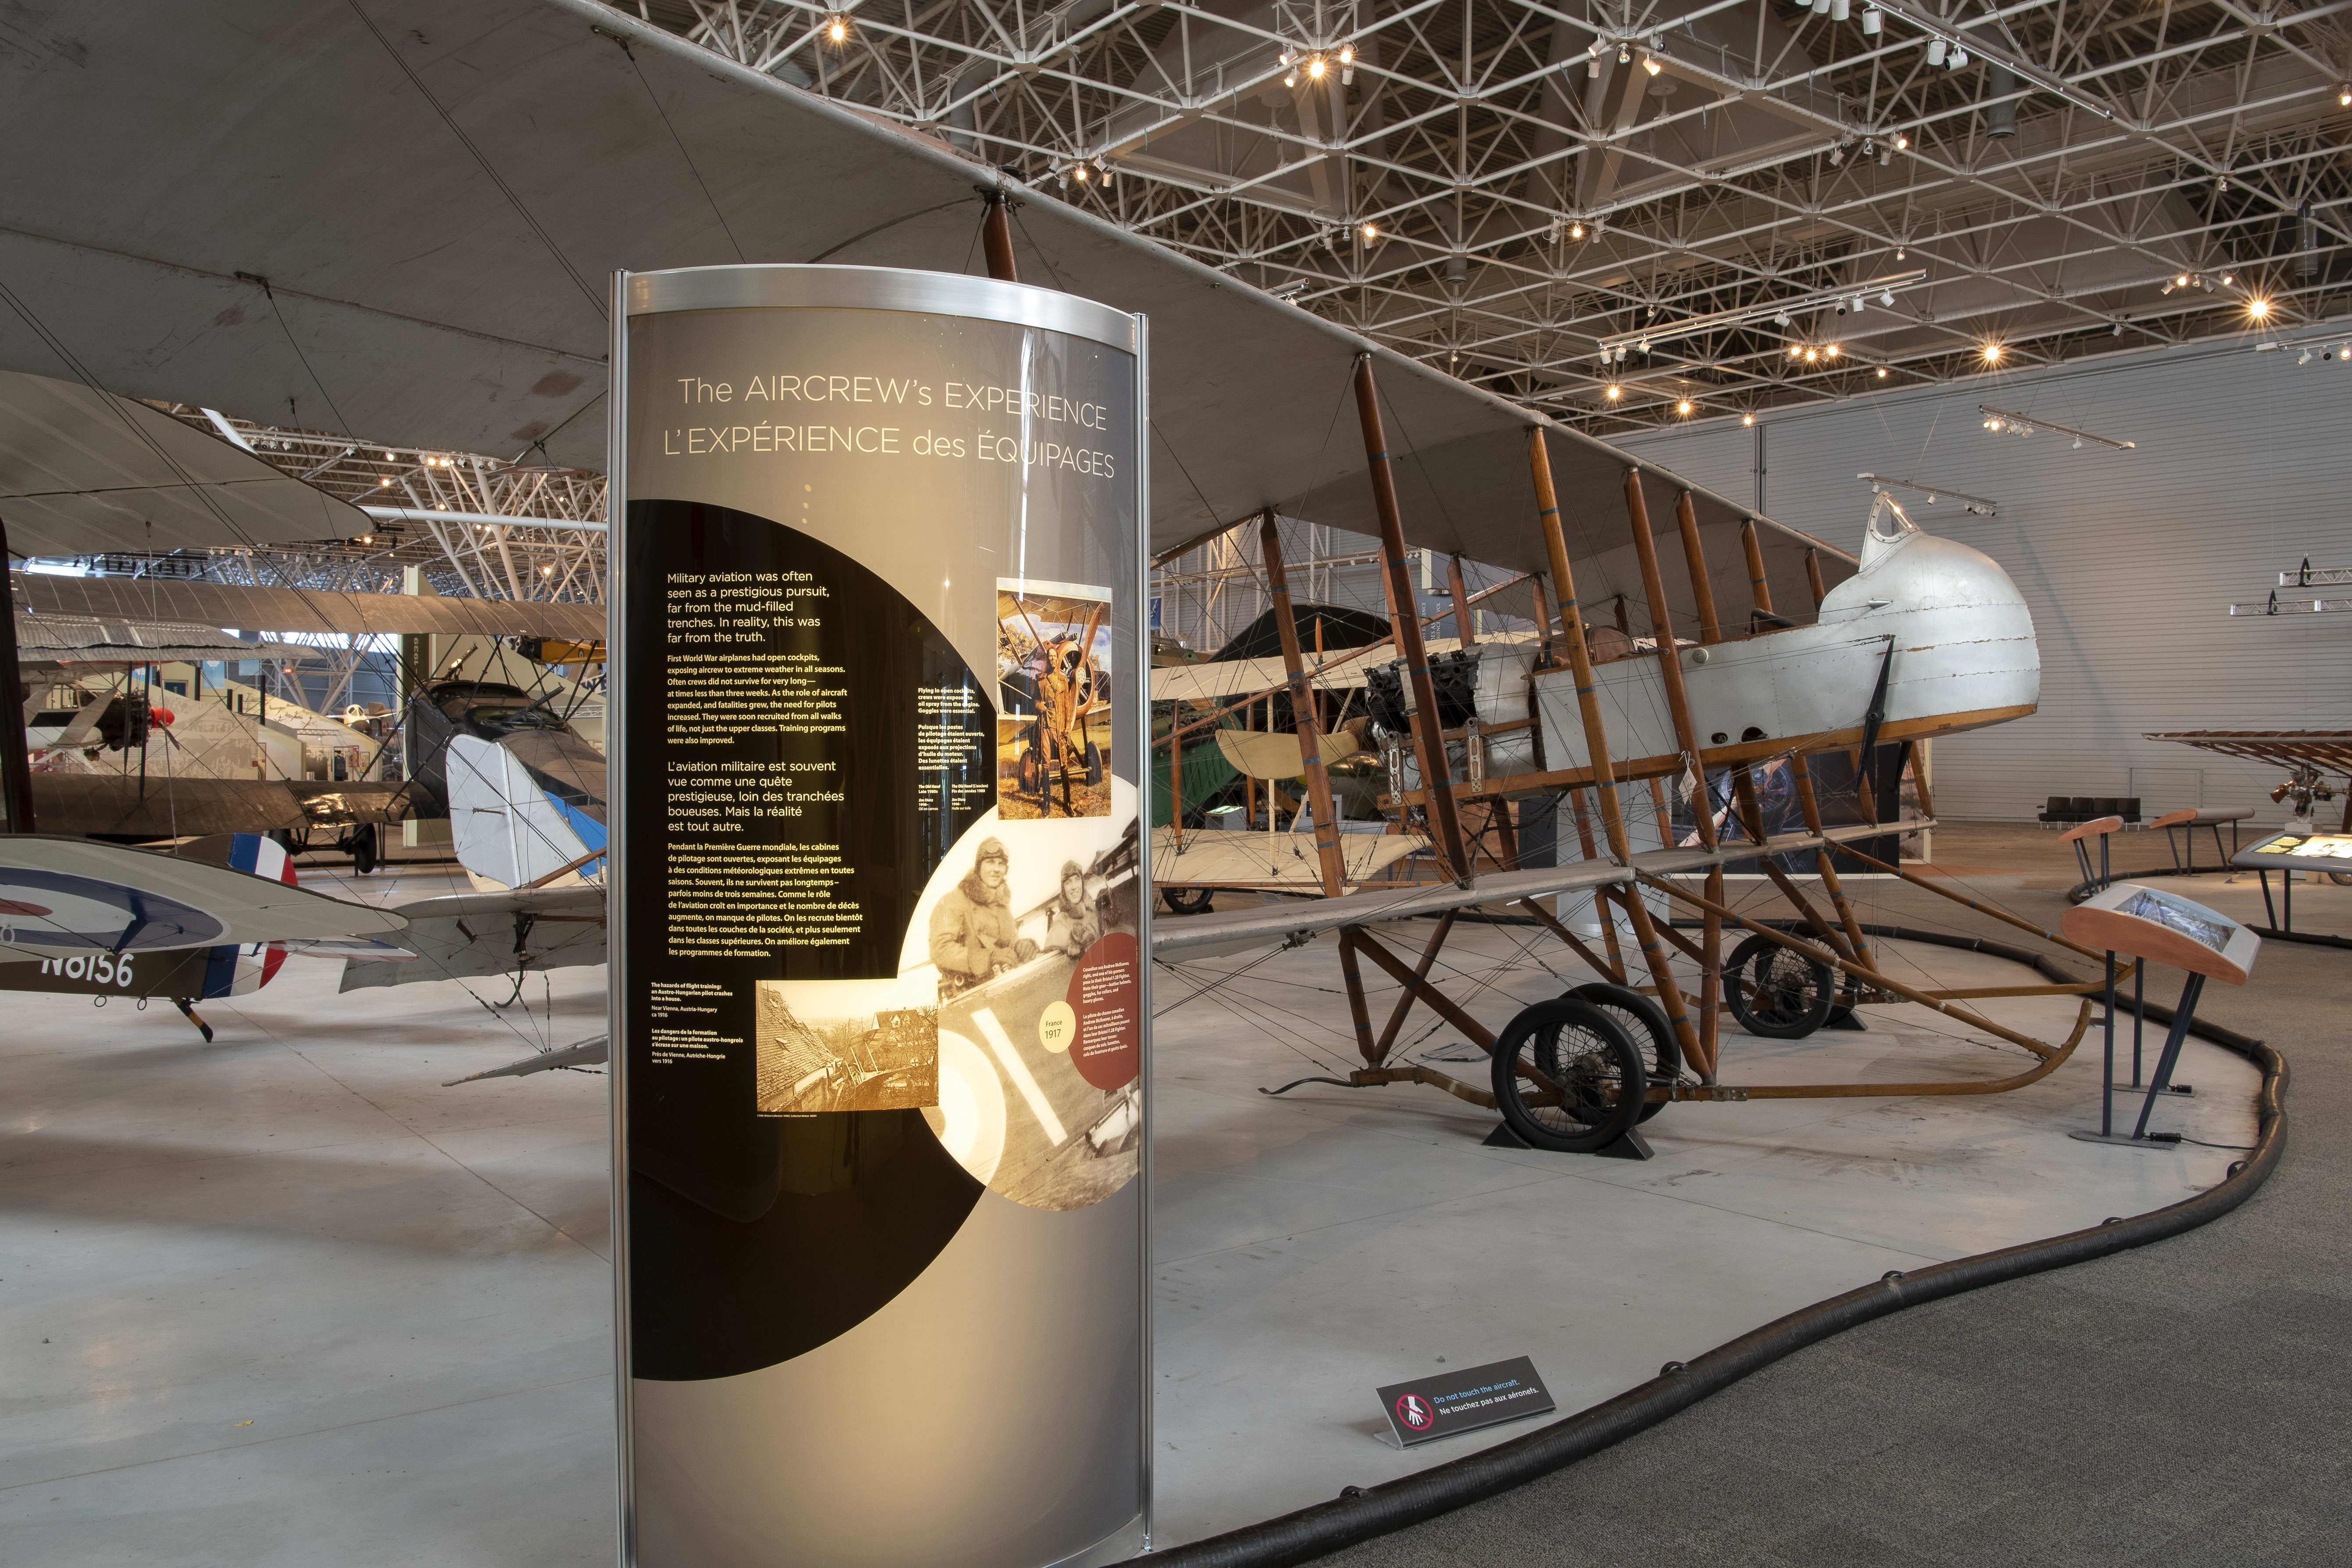 A sleek-looking panel stands in the foreground; in the background several aircraft are visible on the floor of the Canada Aviation and Space Museum.